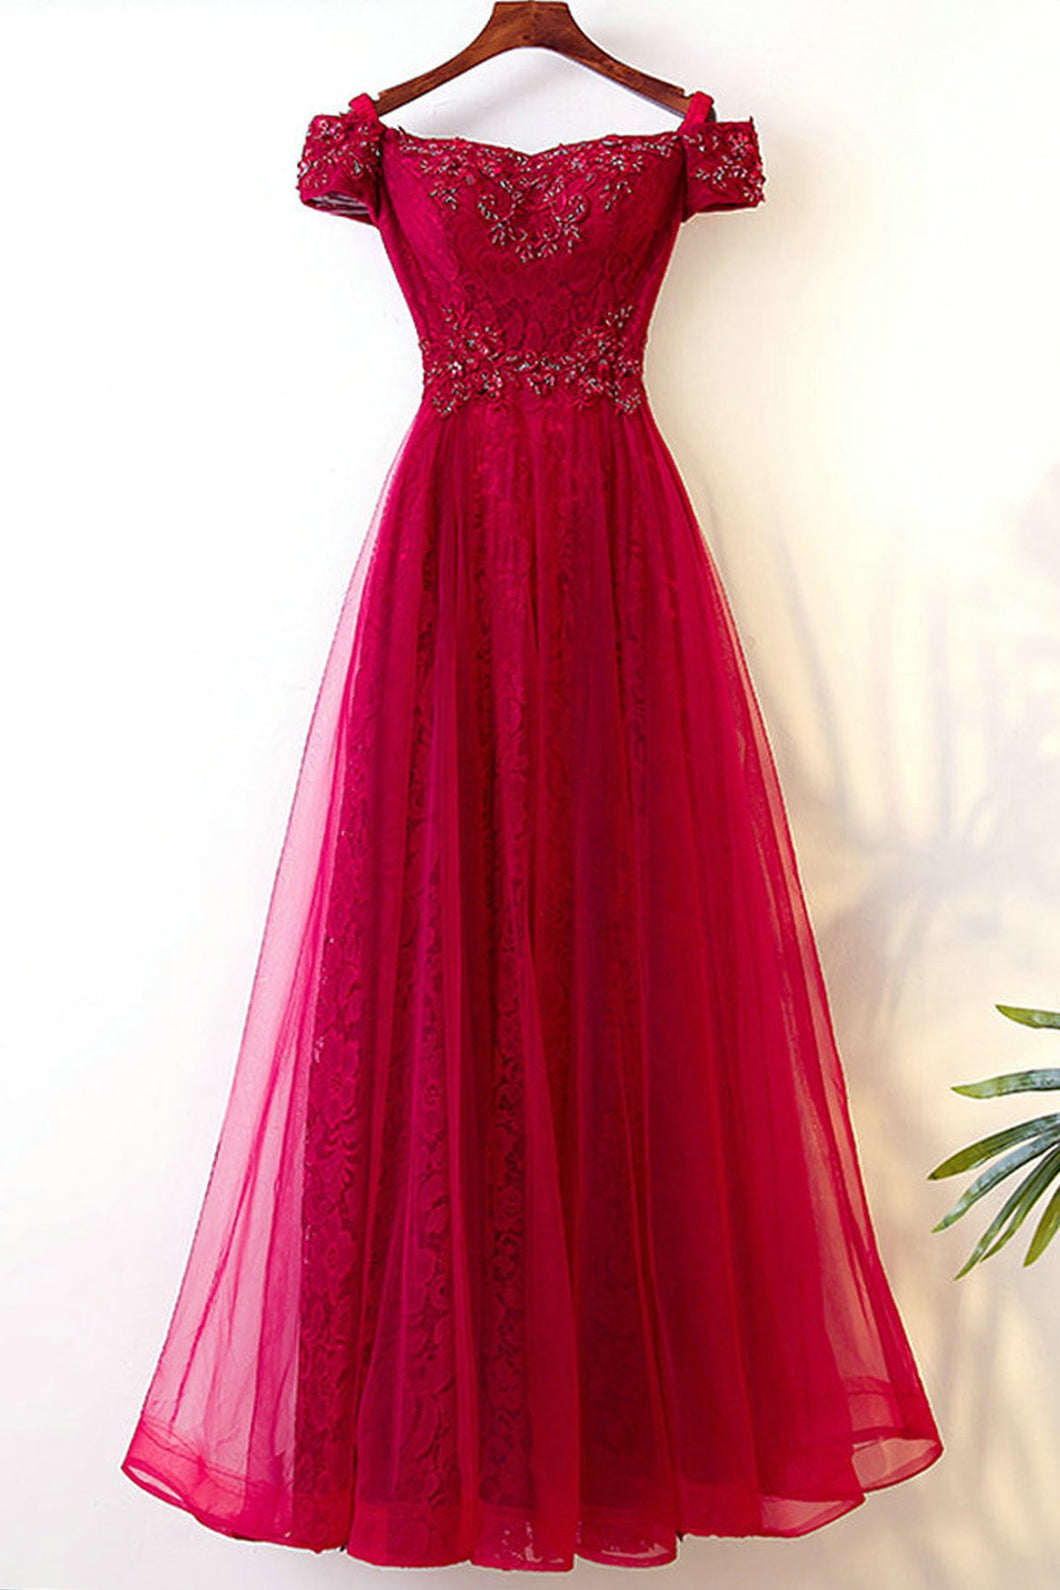 2019 Prom Dresses | Burgundy tulle off shoulder long A-line beaded V neck prom dress, long lace evening dress